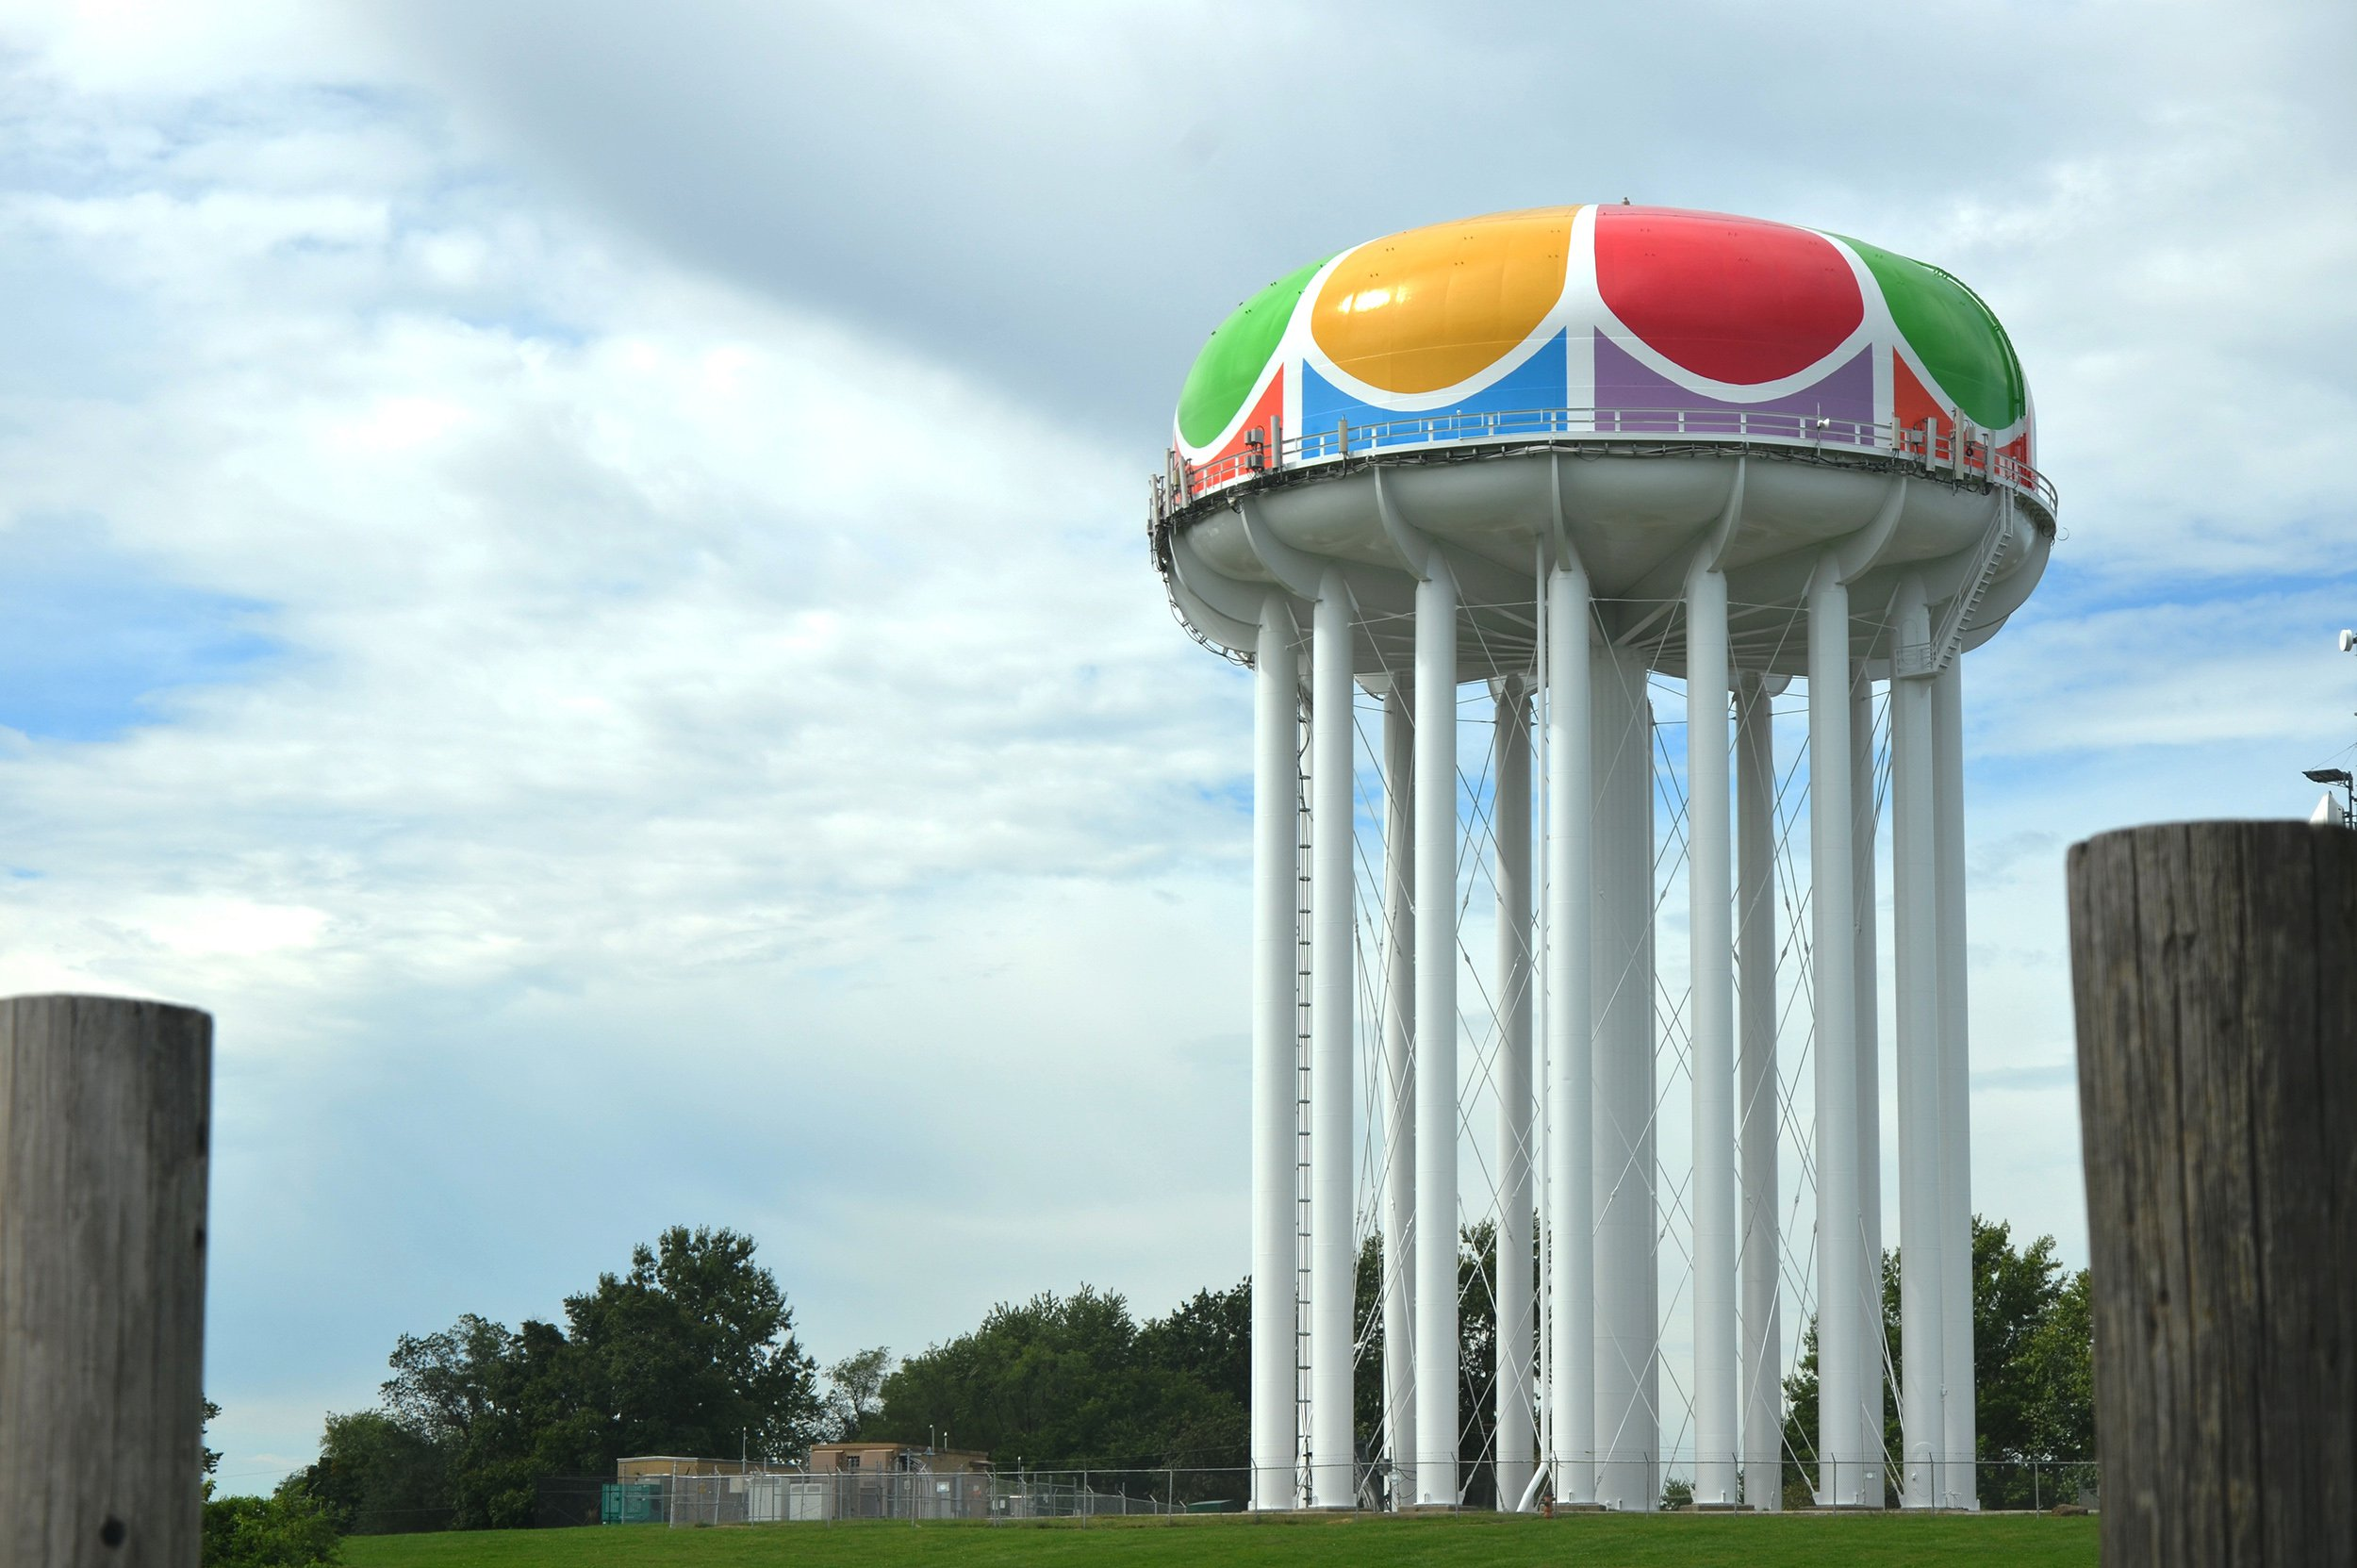 Iconic Water Tanks Tower over Kansas City Landscape - Tnemec Company, Inc.